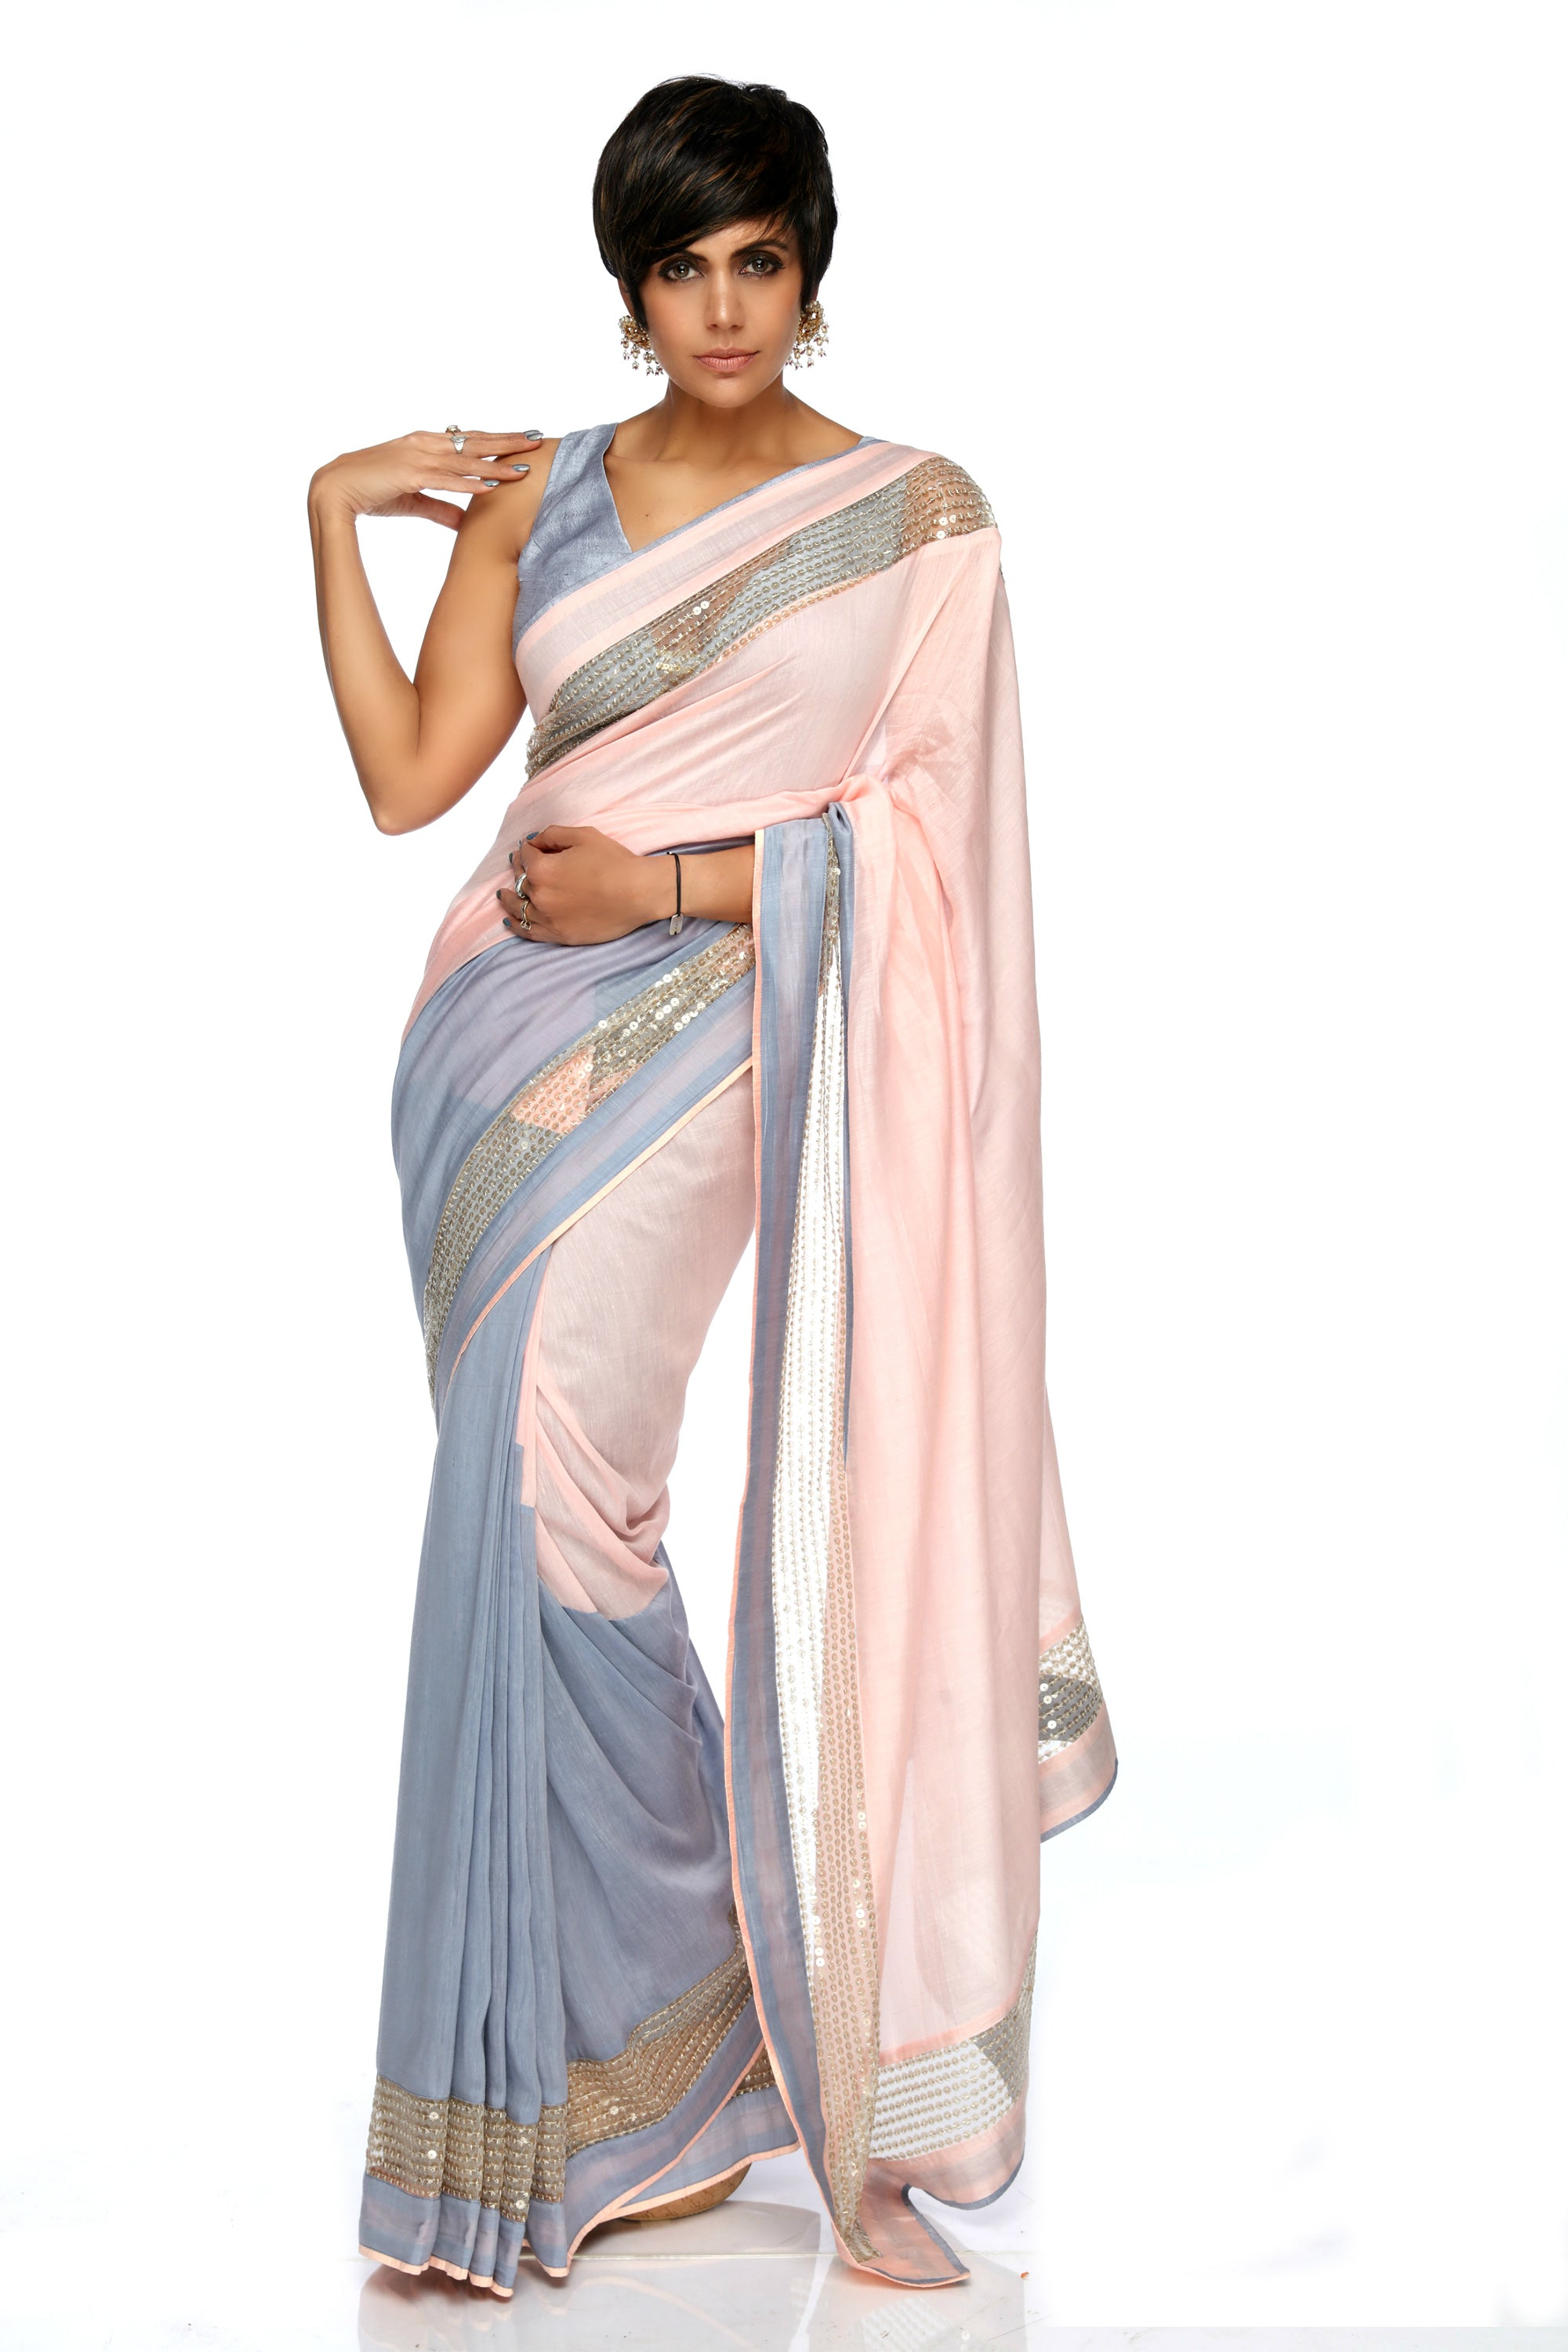 Light Pink & Grey Sequins Saree FRONT